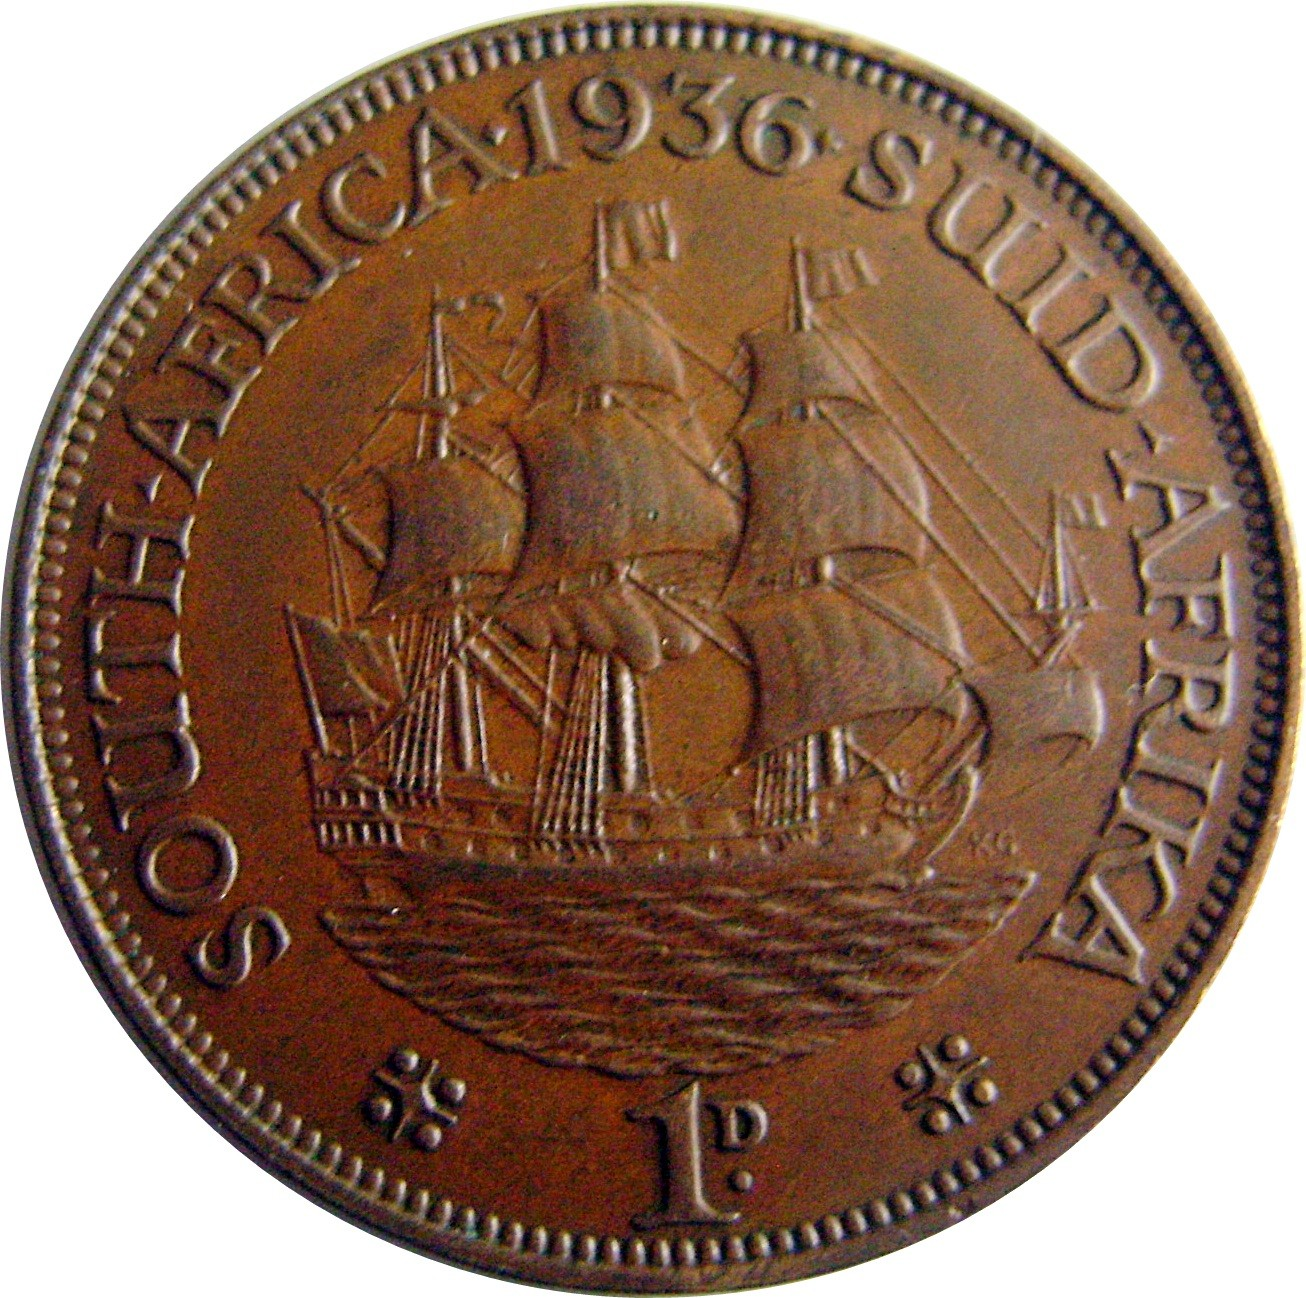 South Africa 1 Penny (1931-1936 George V)